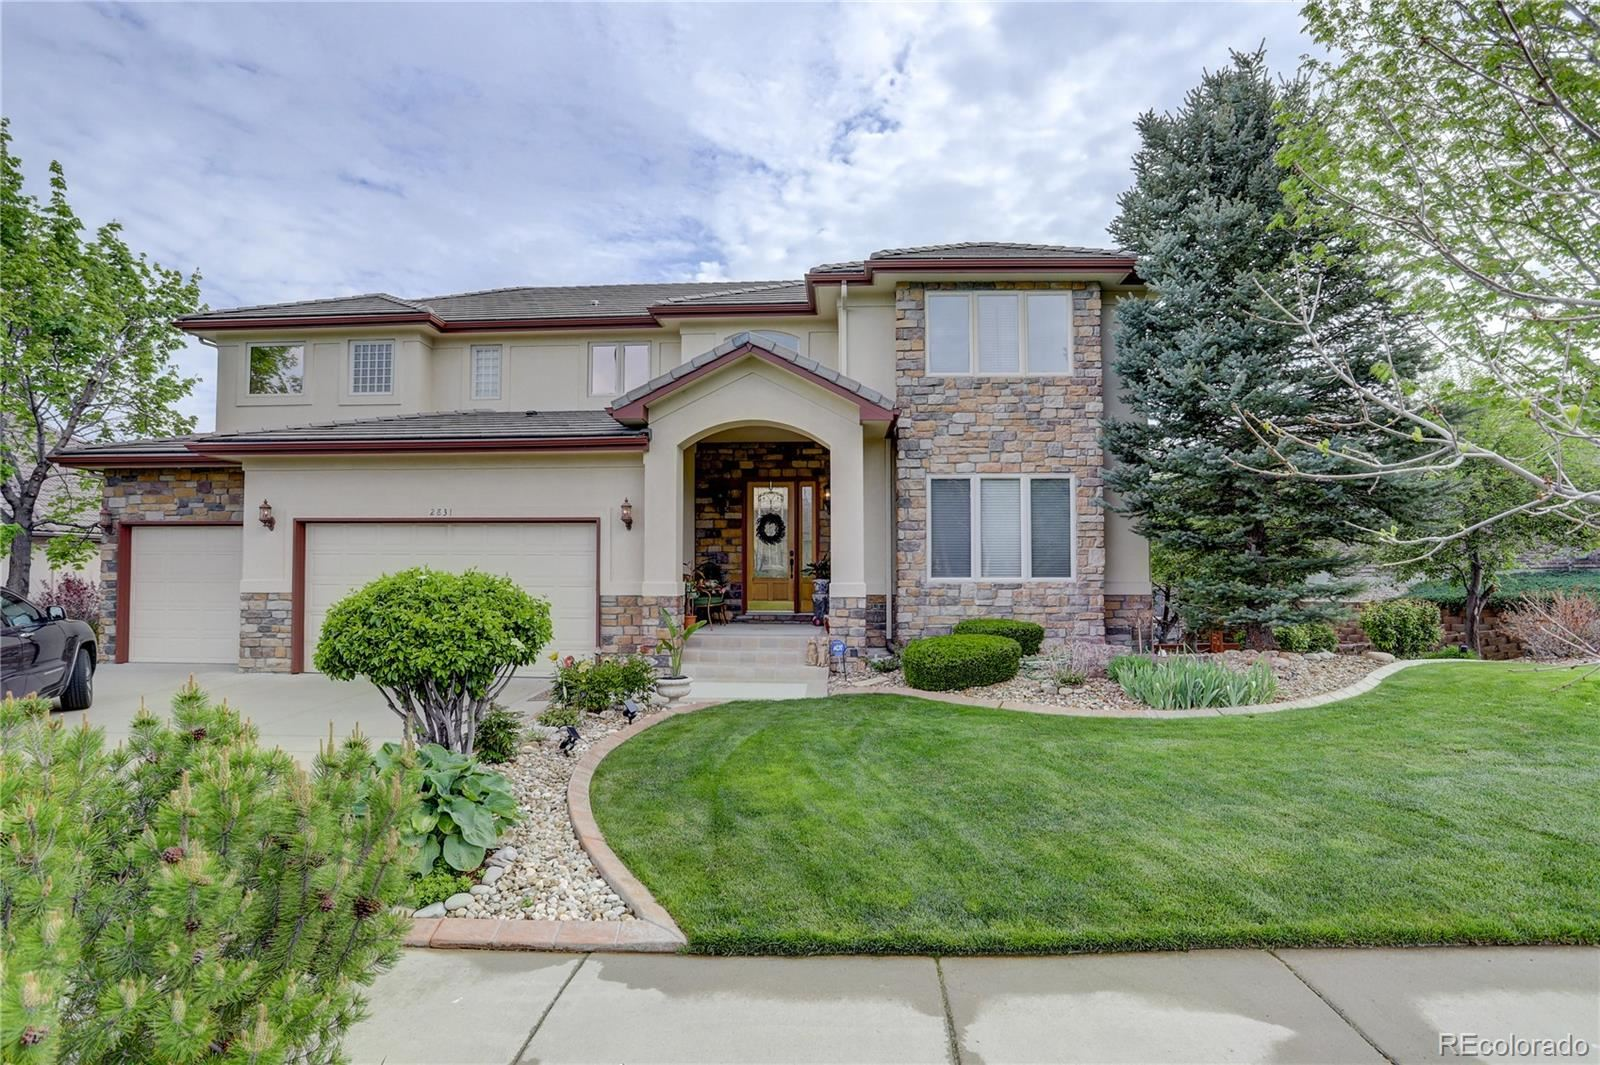 2831 W 114th Court, Westminster, CO 80234 - #: 4415563